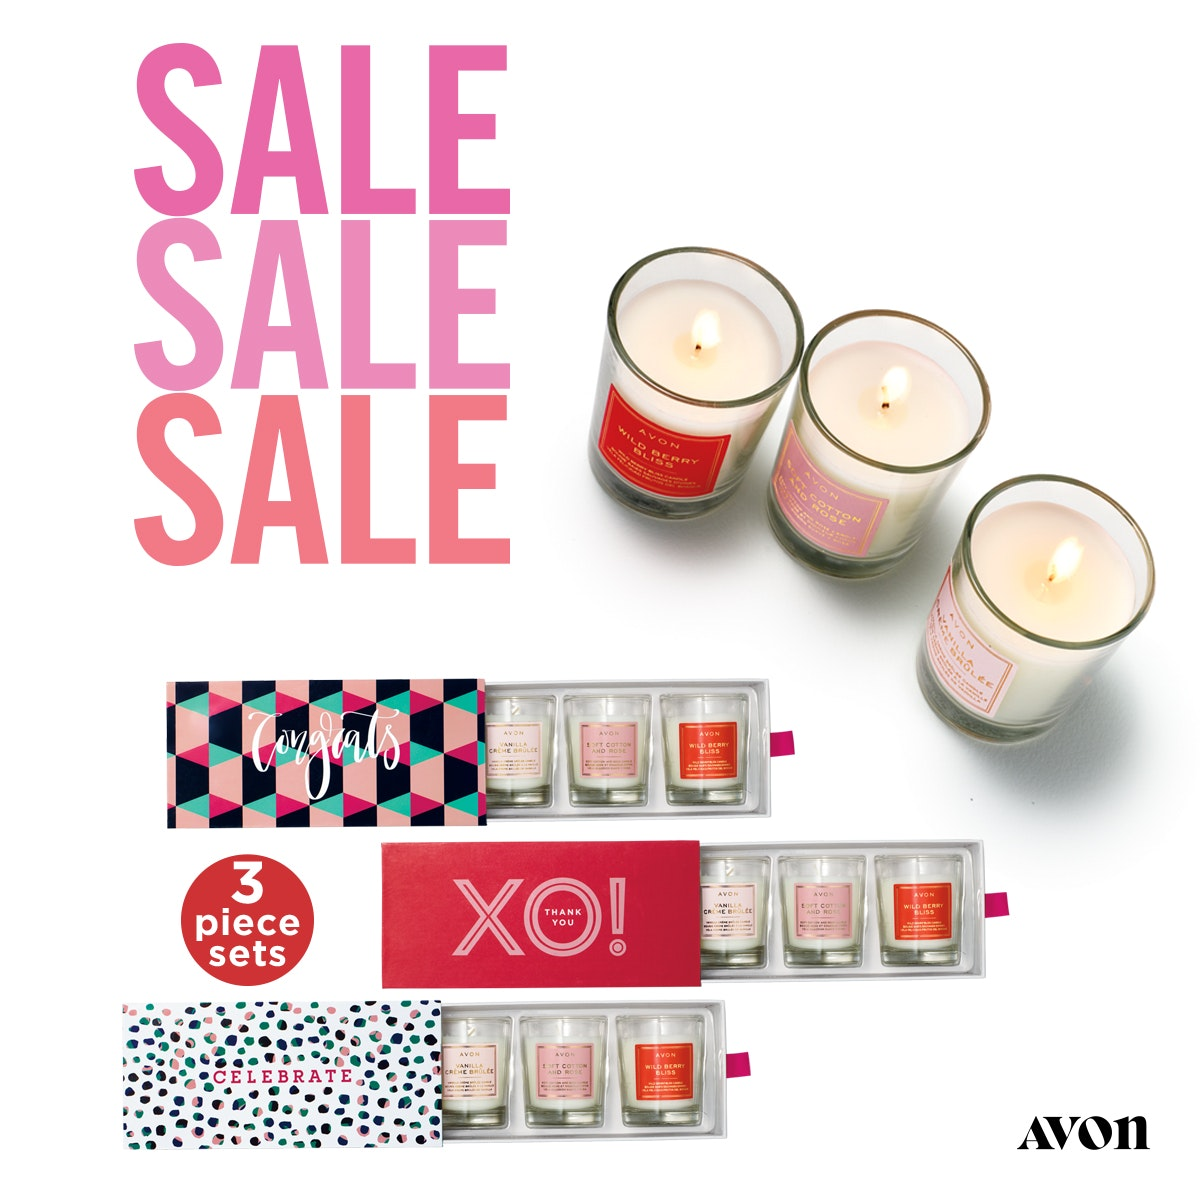 Avon Expression Votive Candle Sets on sale for $14.00. Three different sets to choose from.